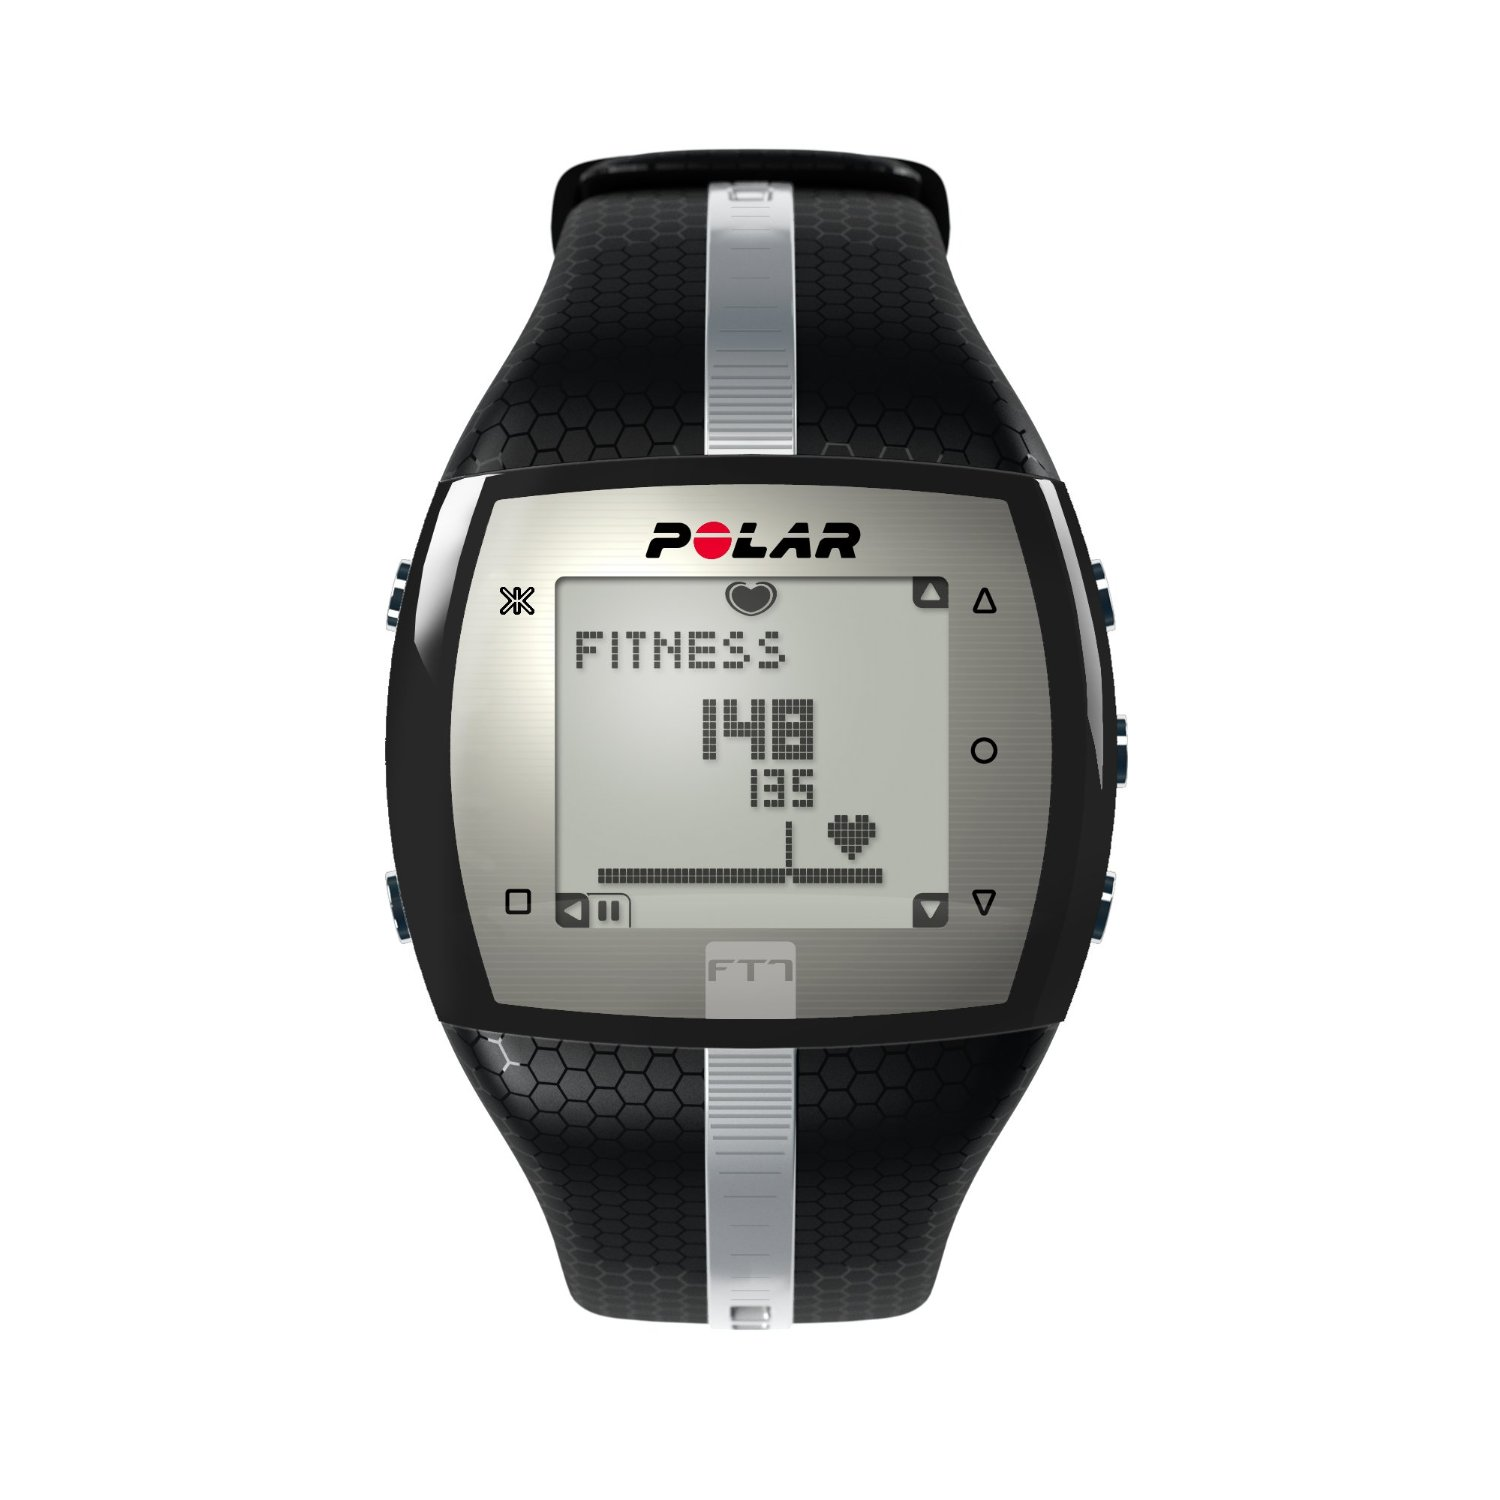 Polar FT7 Heart Rate Monitor - I wear this product to determine when I am in the optimal fat burning zone for my workouts. It enables me to keep a close eye on my heart as well, to make sure that I am working hard enough, but not too hard.